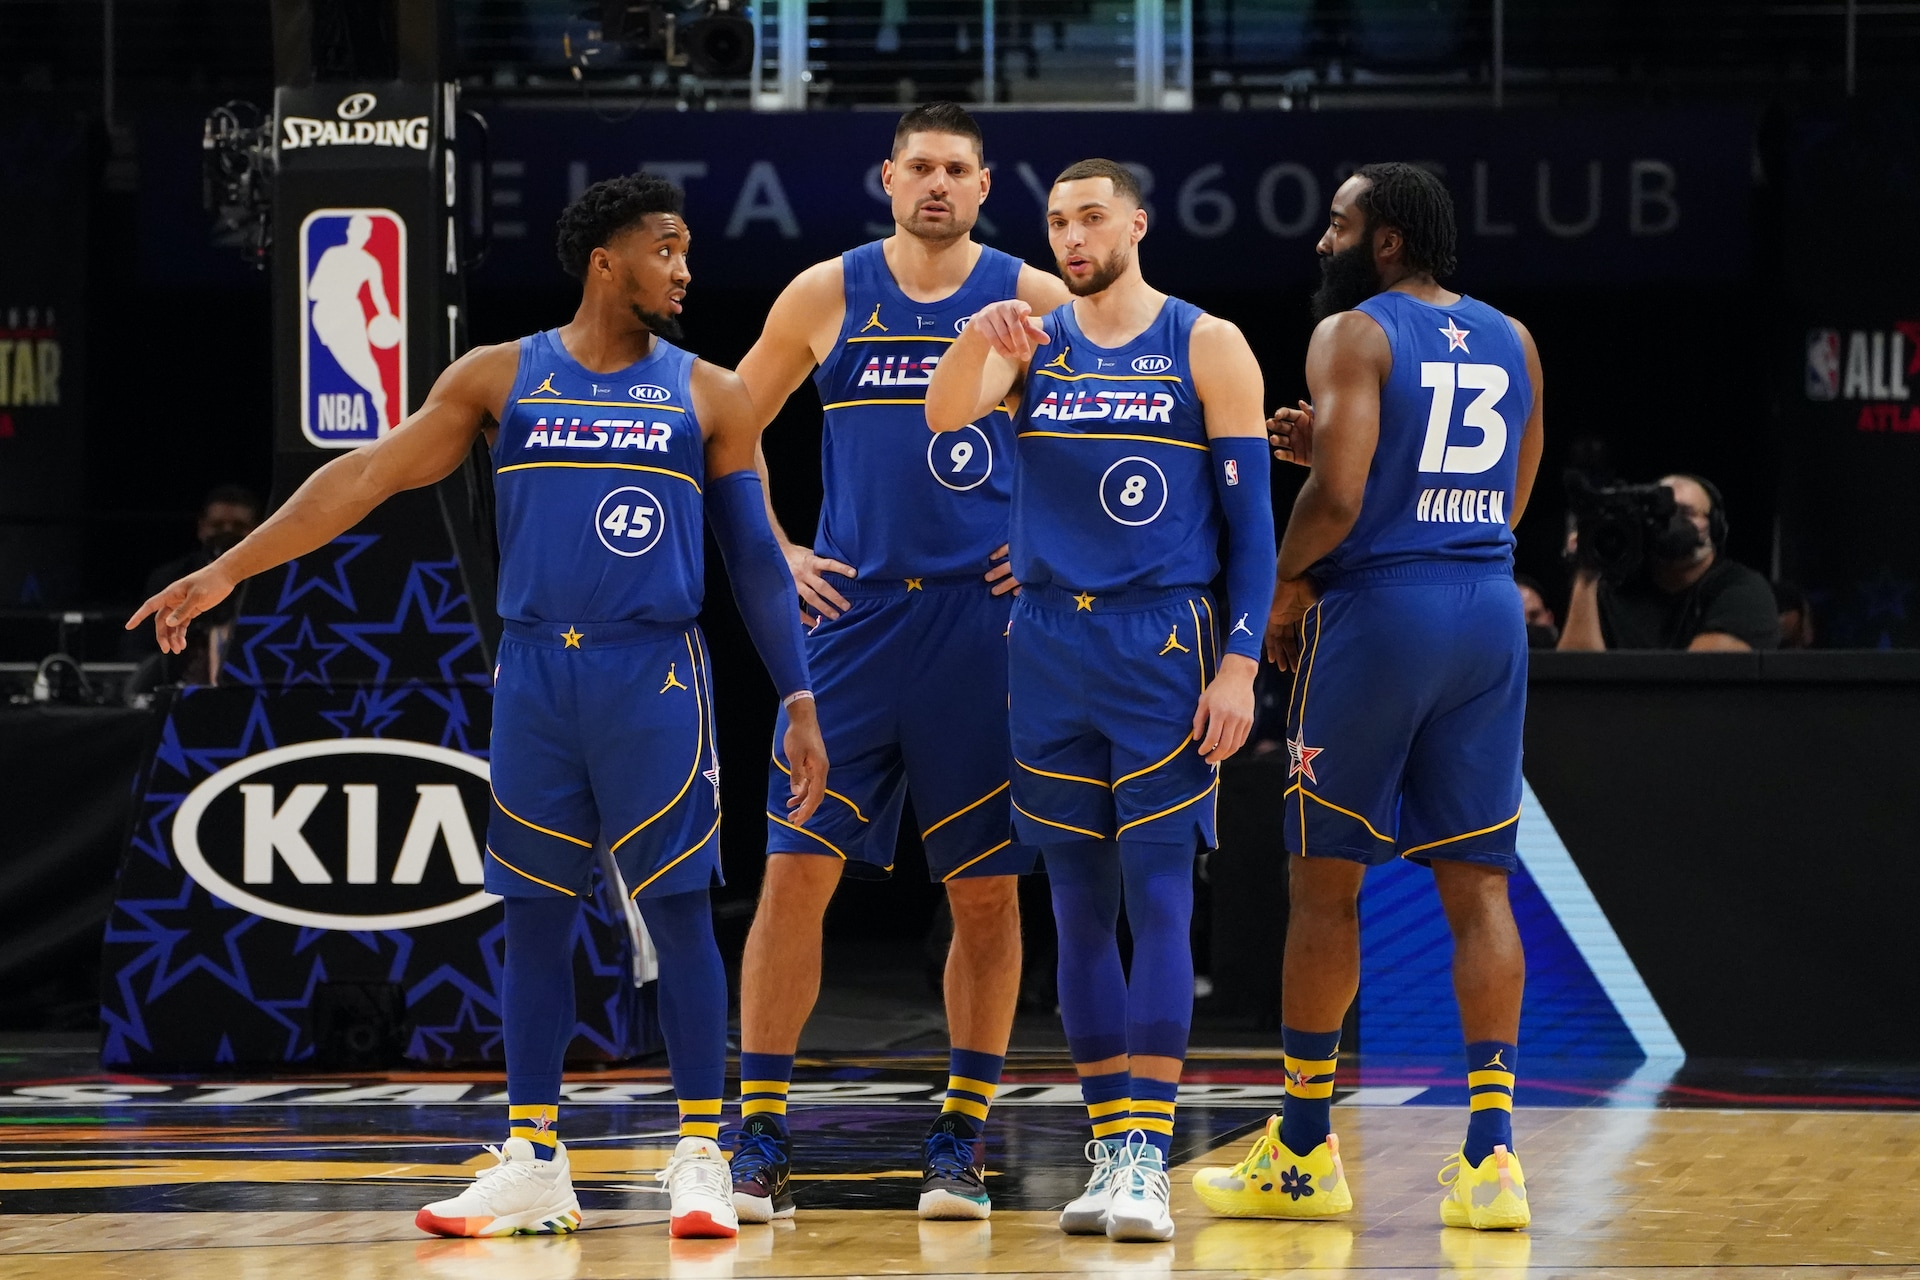 Zach LaVine points while talking to Vucevic and Mitchell at the NBA All-Star game